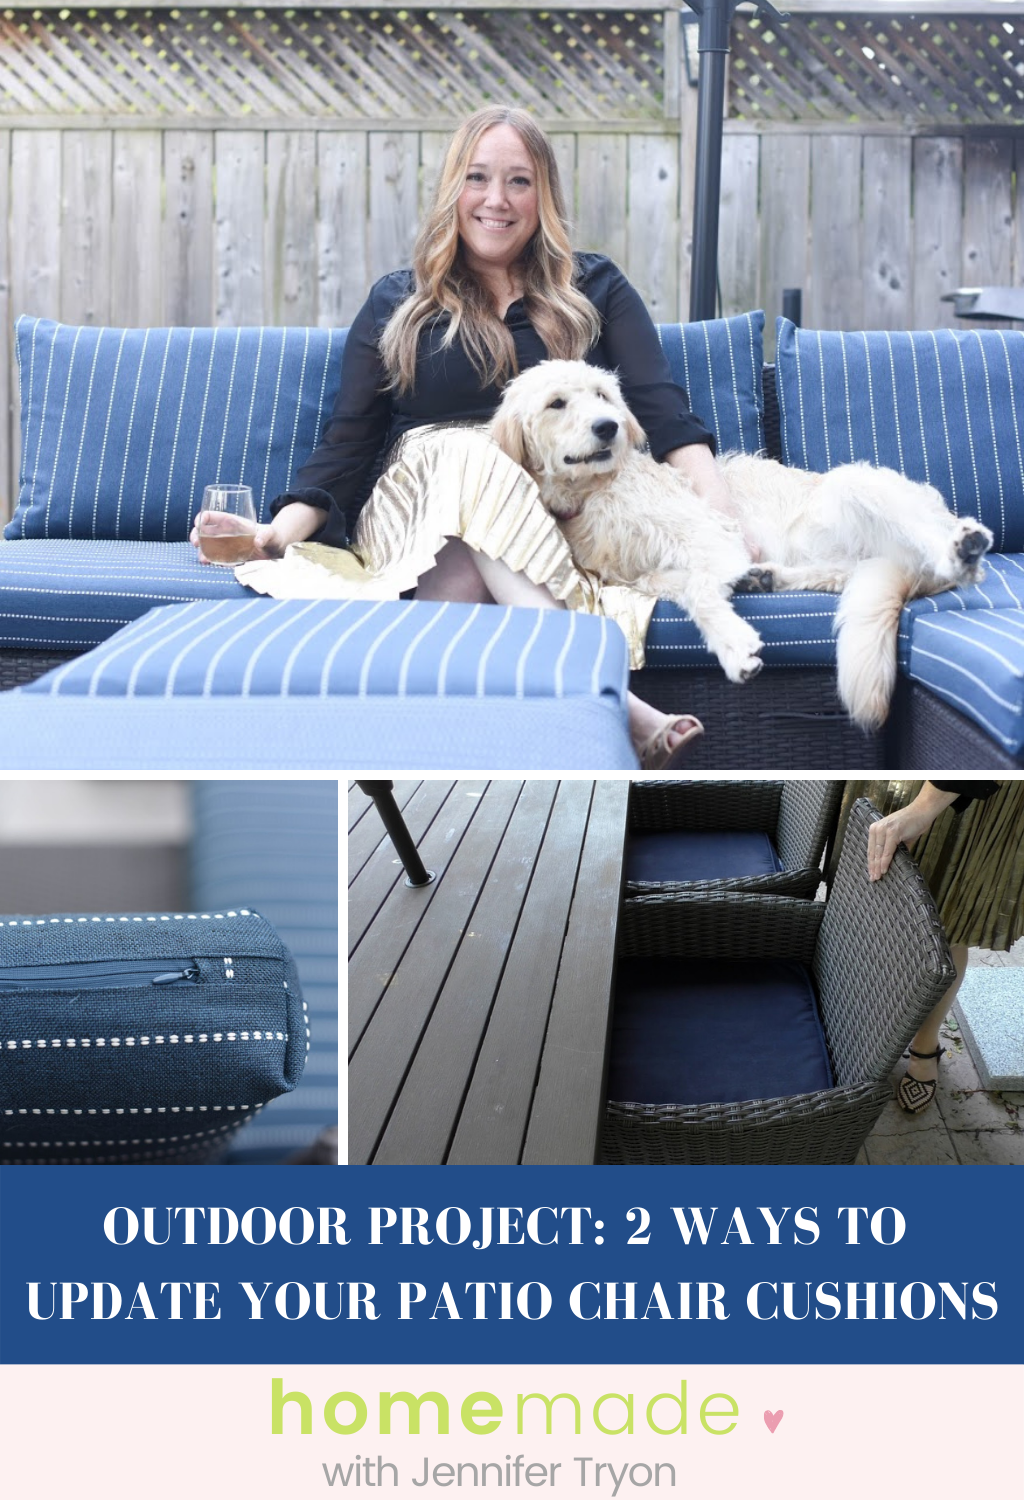 Outdoor Project: 2 Ways To Update Your Patio Chair Cushions